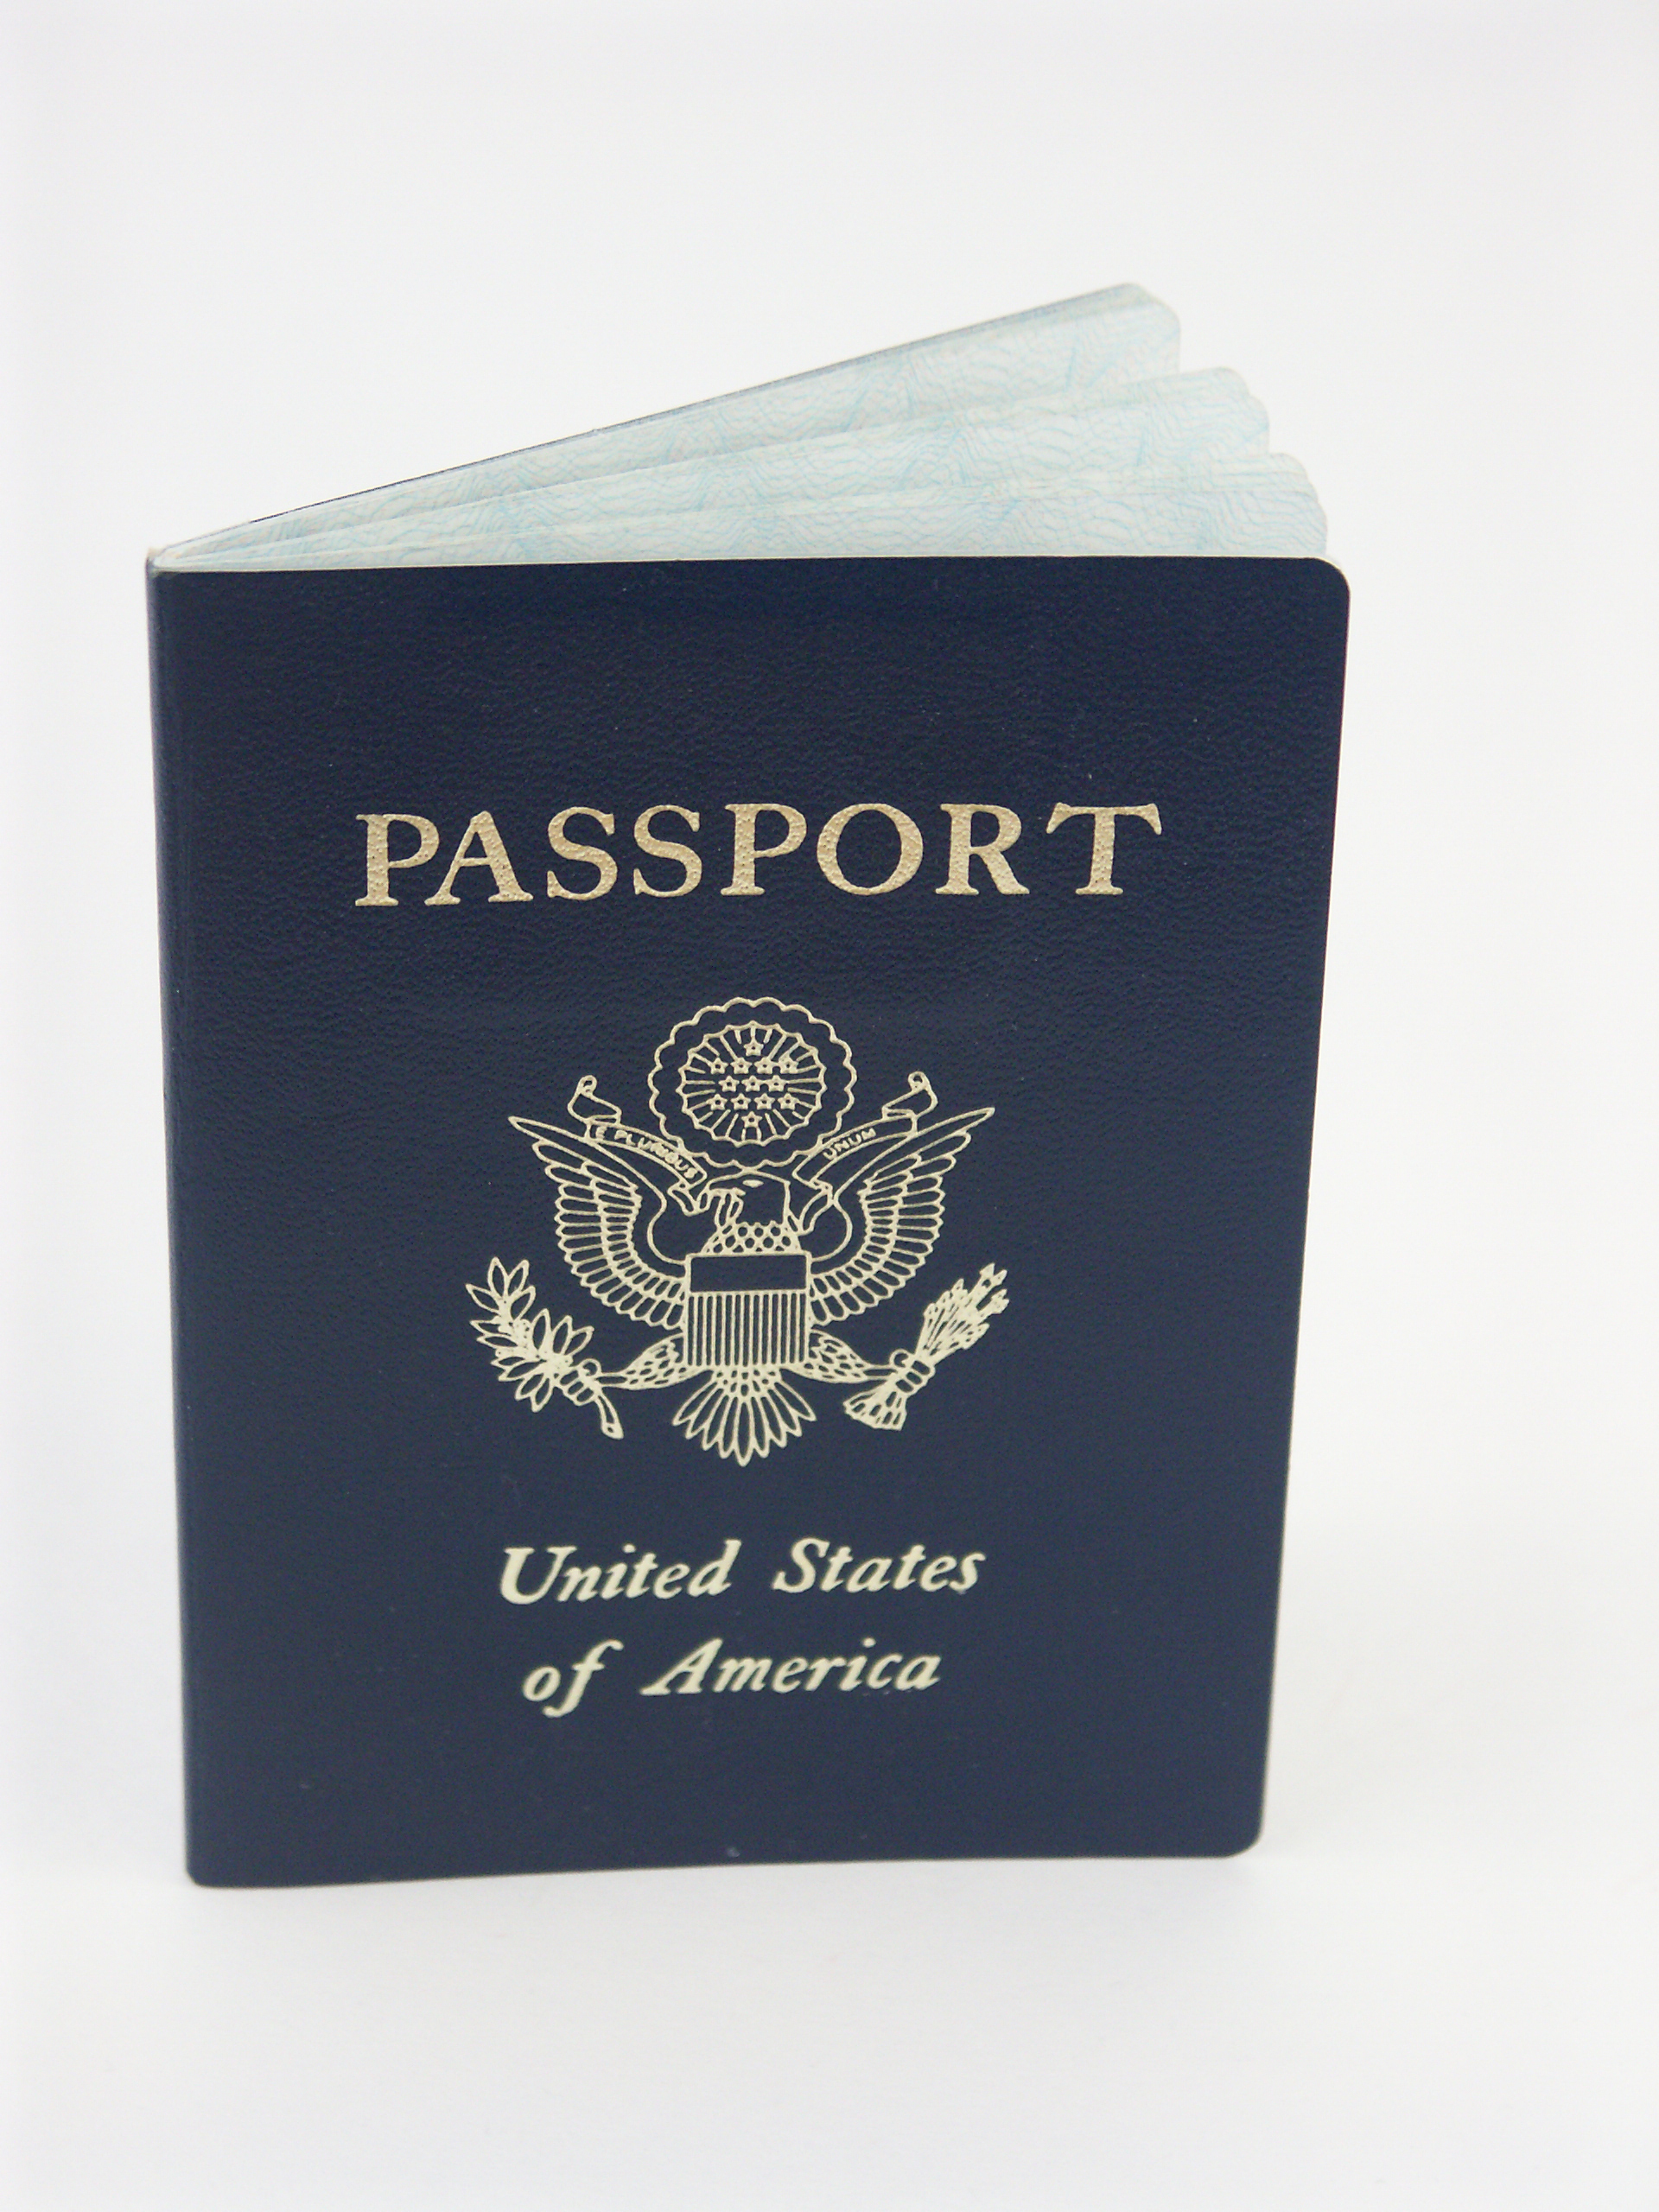 How To Obtain A Passport In Paducah, Kentucky